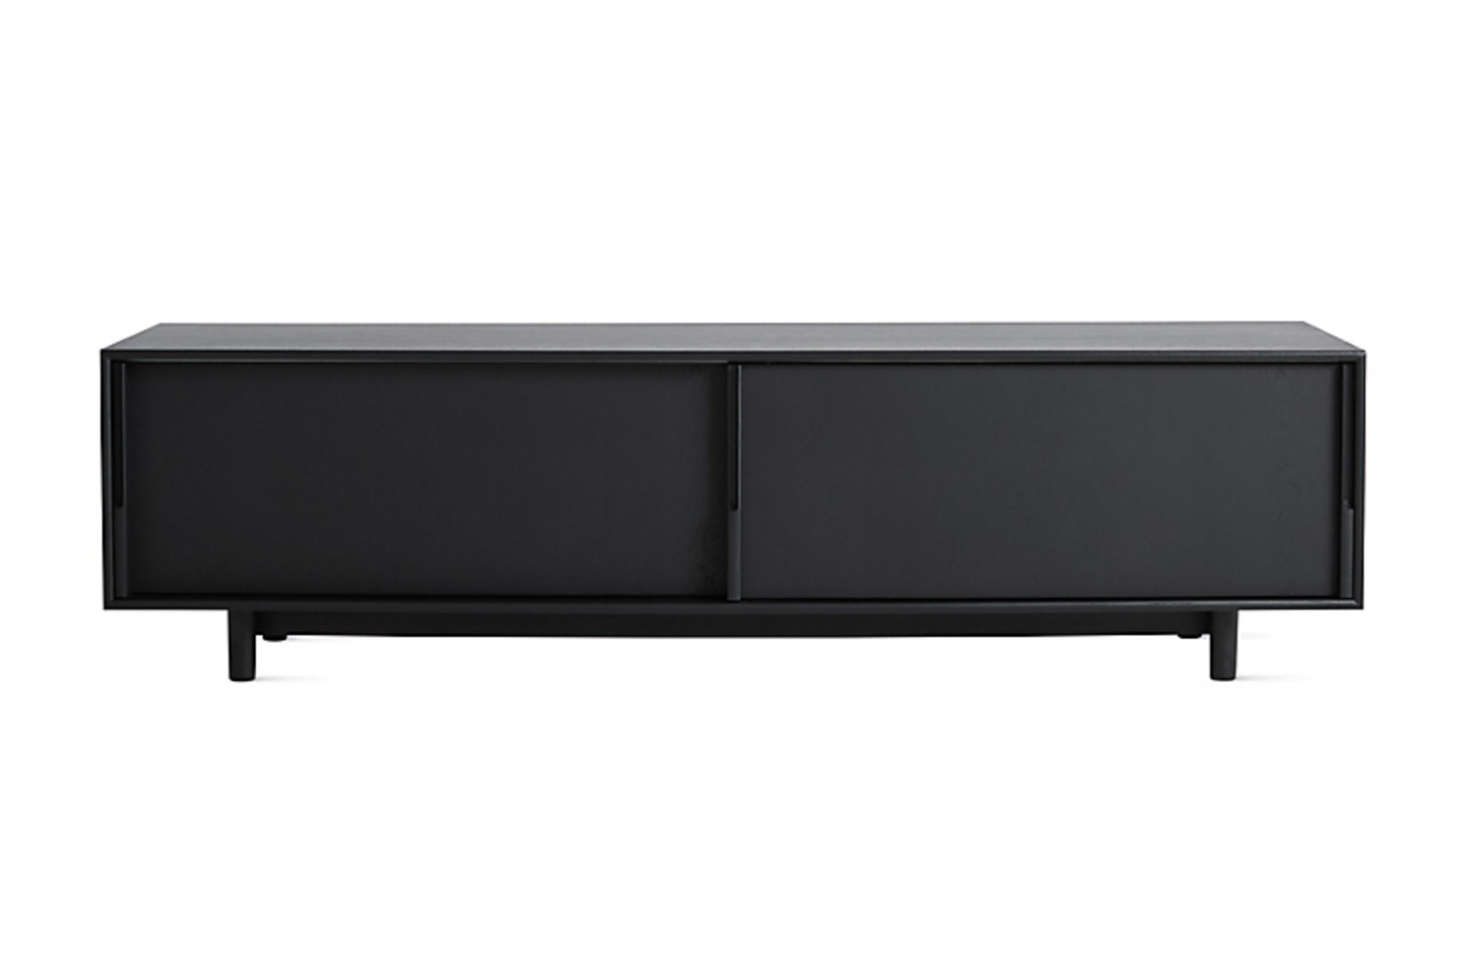 The Edel Media Unit designed by Jenkins & Uhnger for Design Within Reach comes in Ebonized Oak (shown), Oak, and Walnut; $